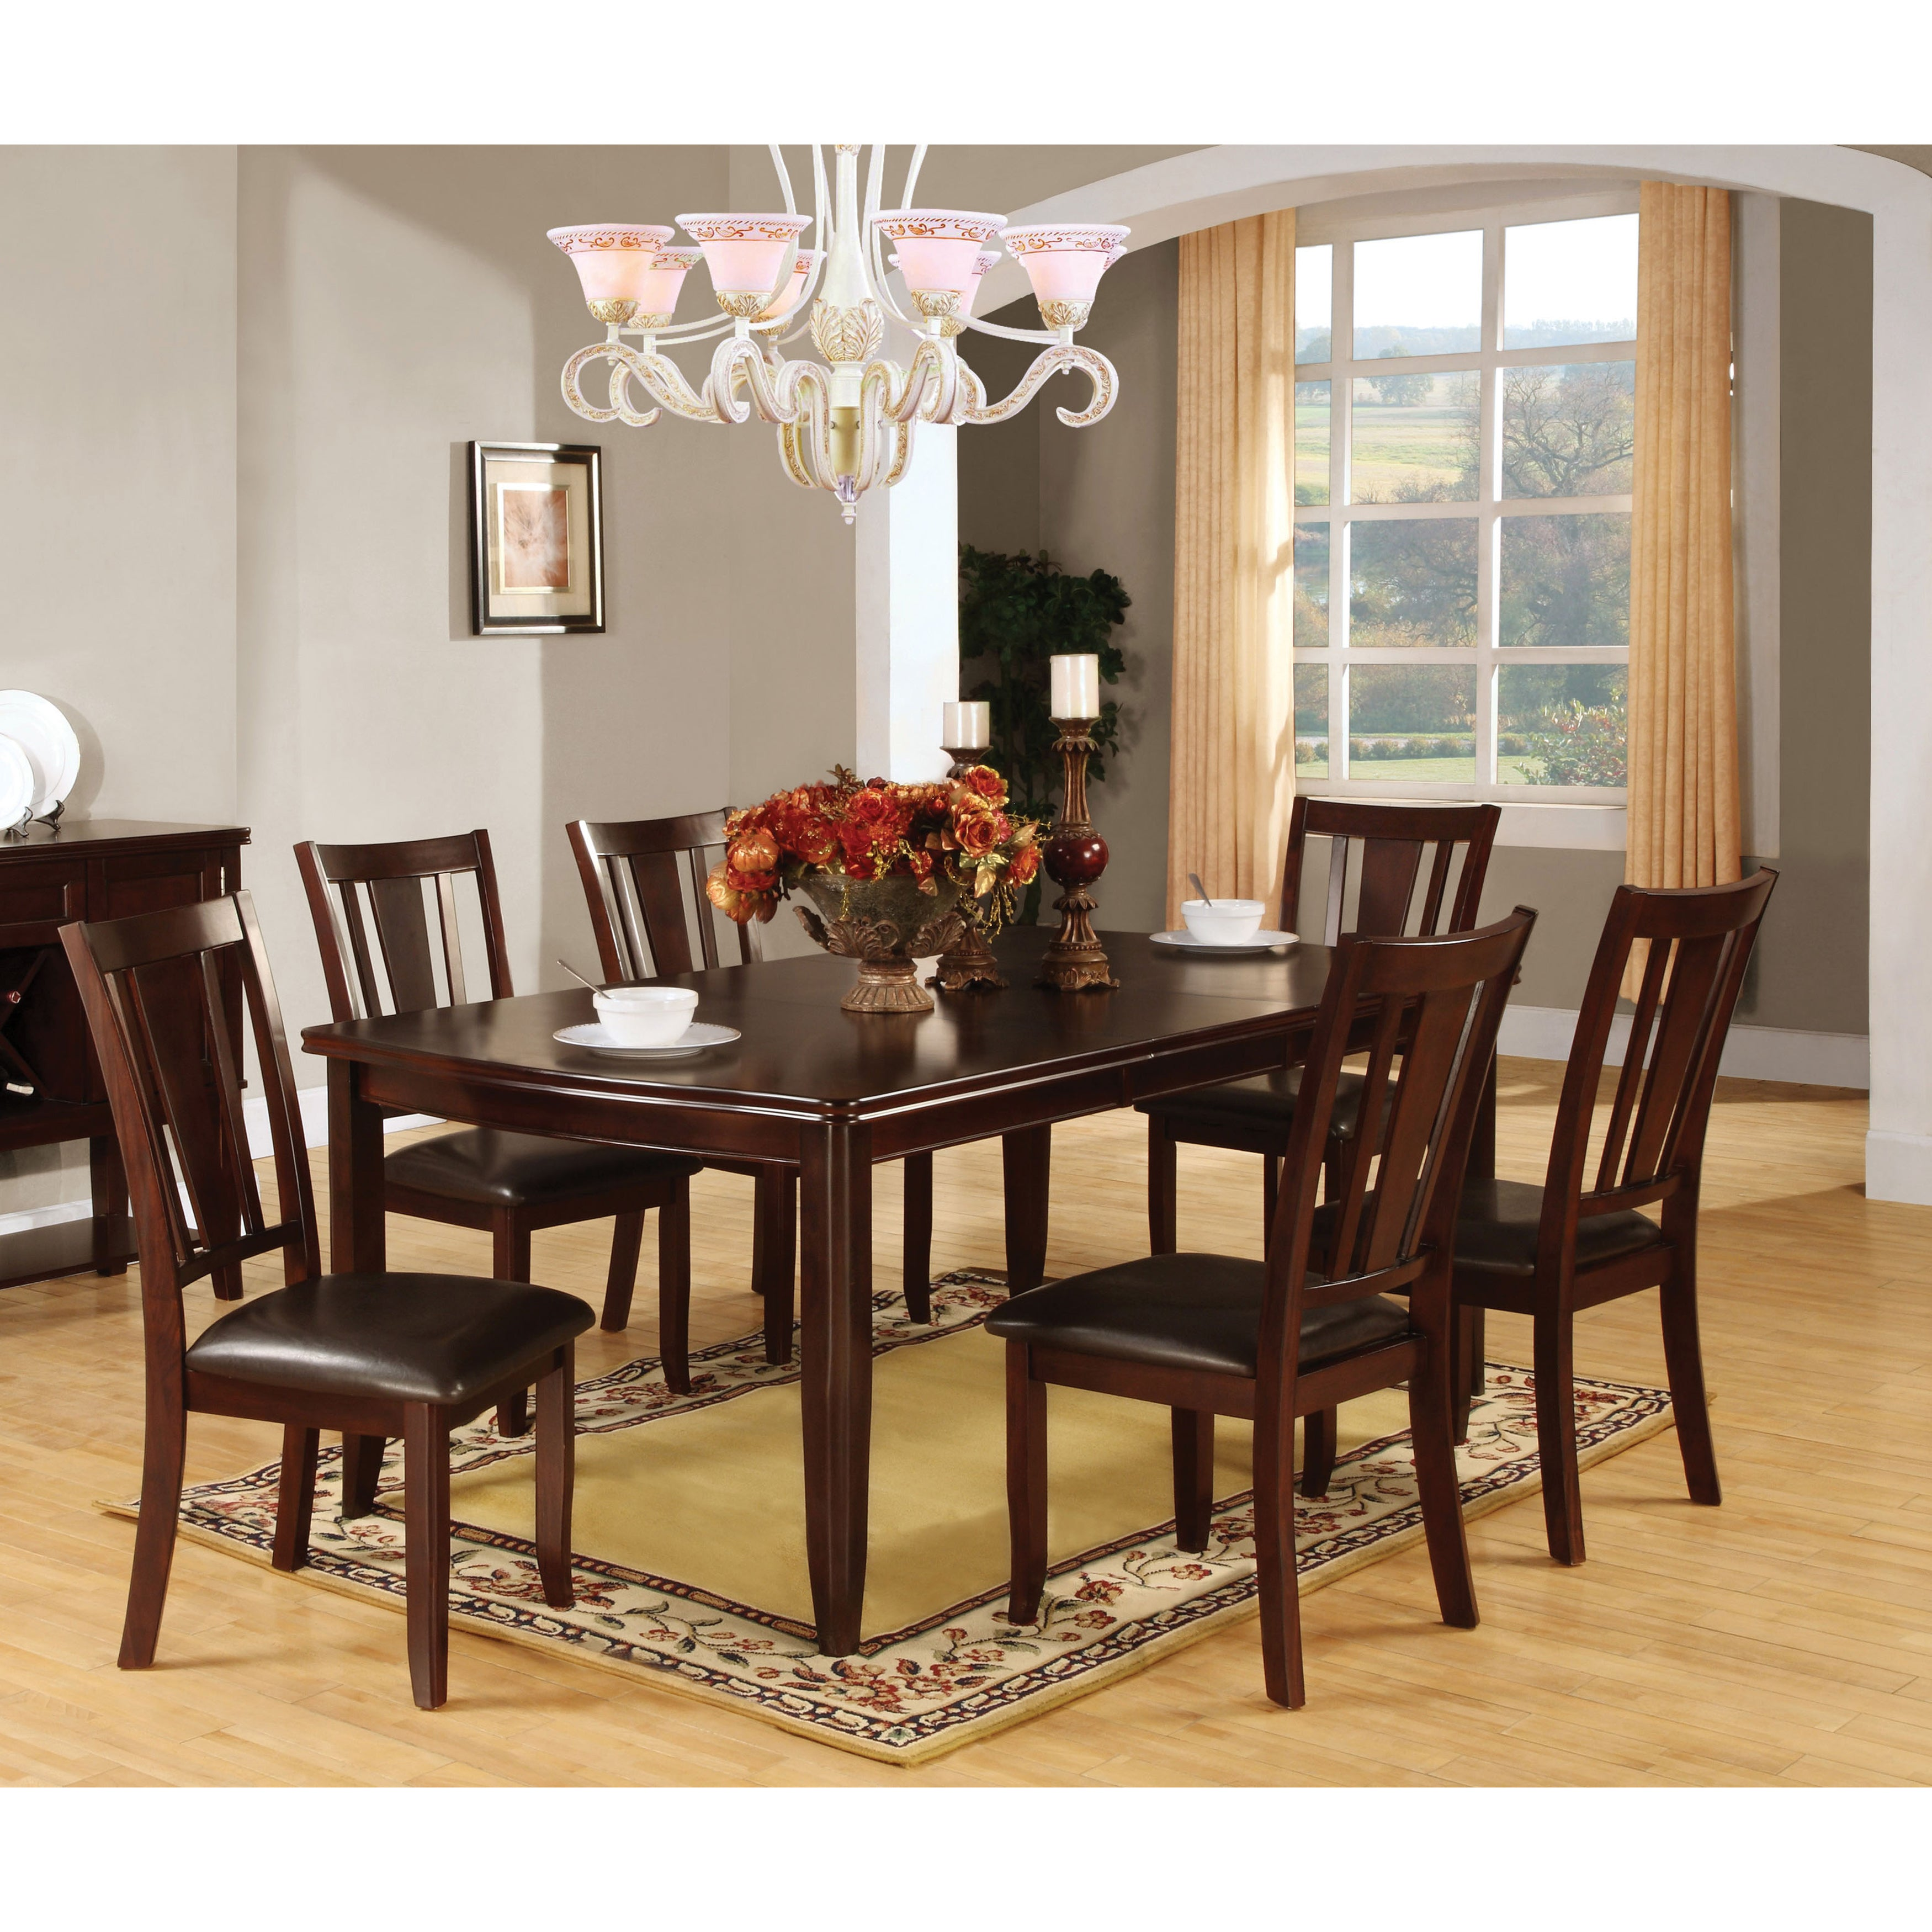 Furniture of America Wopp Contemporary Espresso 7-piece Dining Set